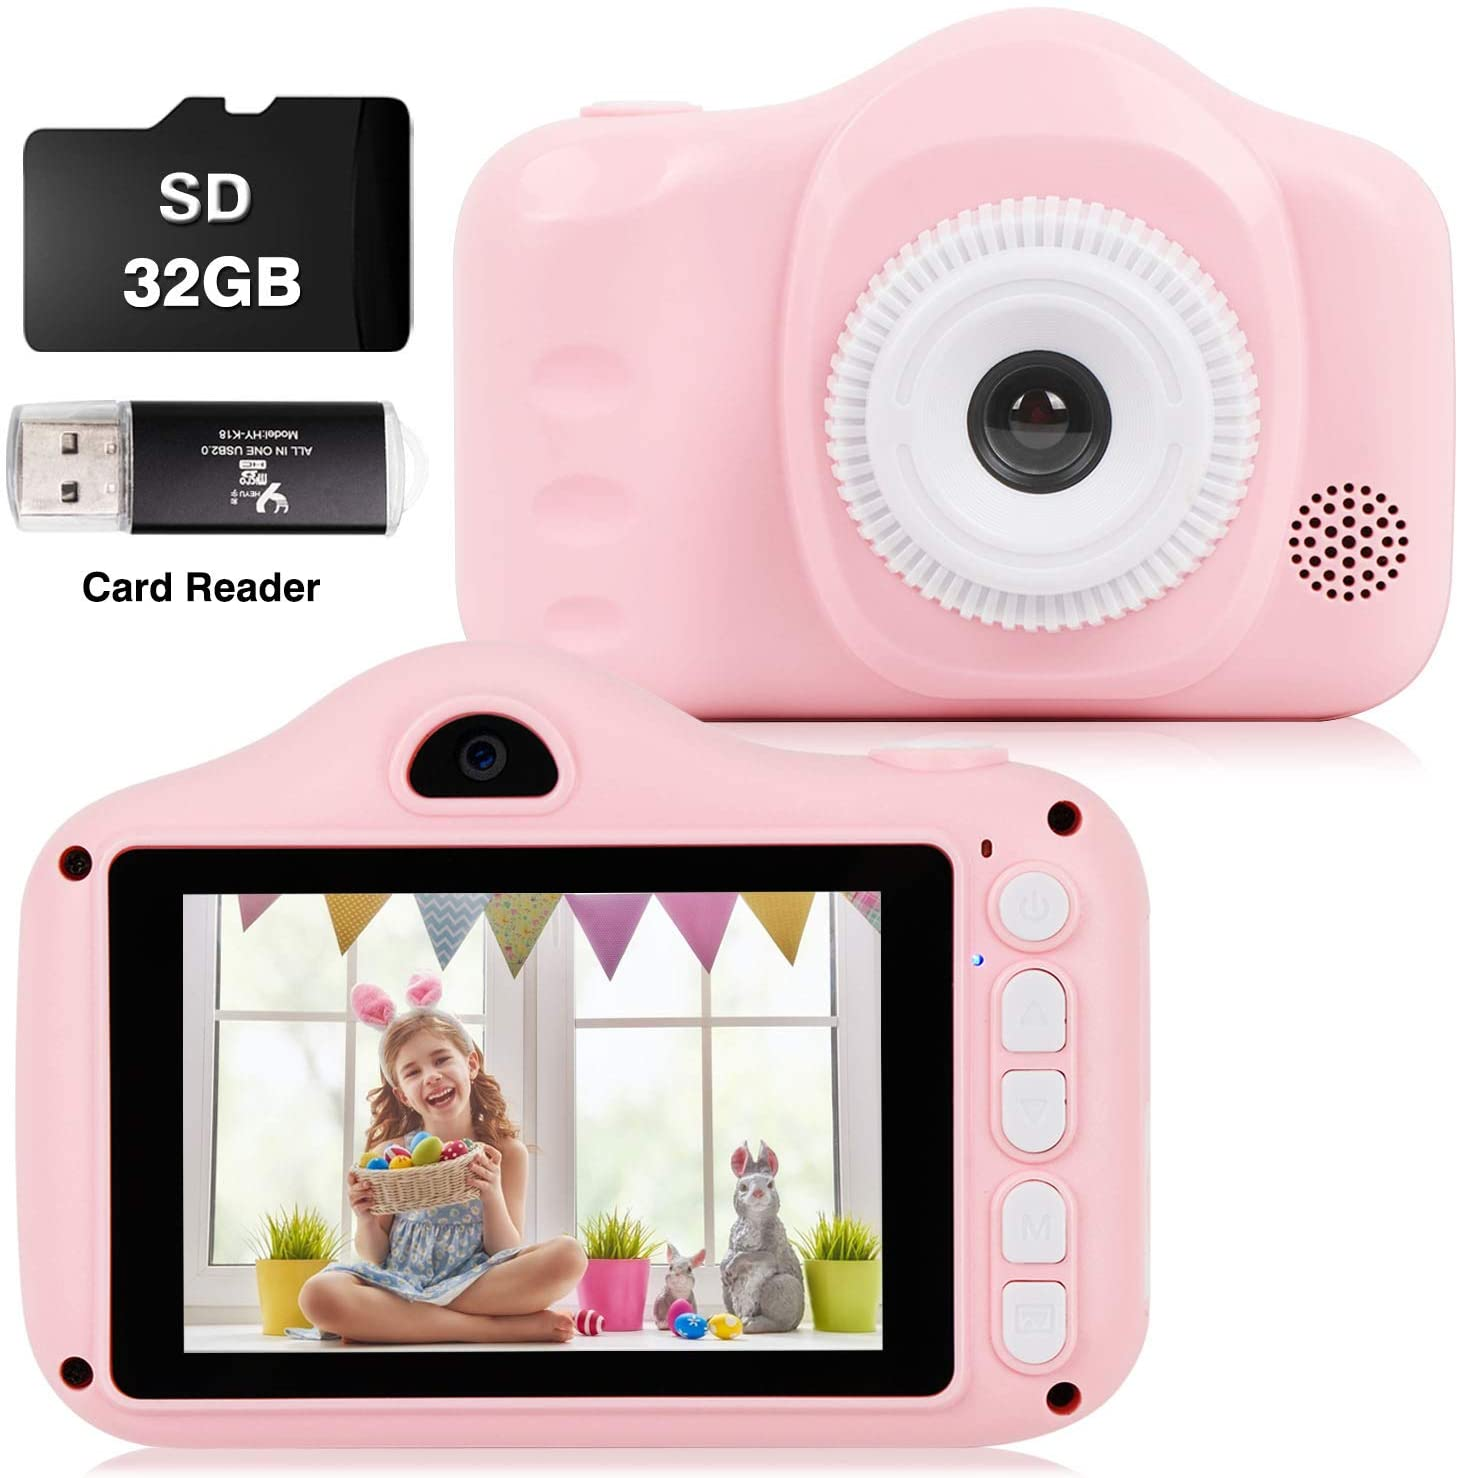 Weefun Kids Camera Toys Dual Lens Digital Selfie Camera for 3-10 Year Old Children 3.5 inch Color Screen 1080FHD with 32GB SD Card, Gifts for Boys and Girls Pink